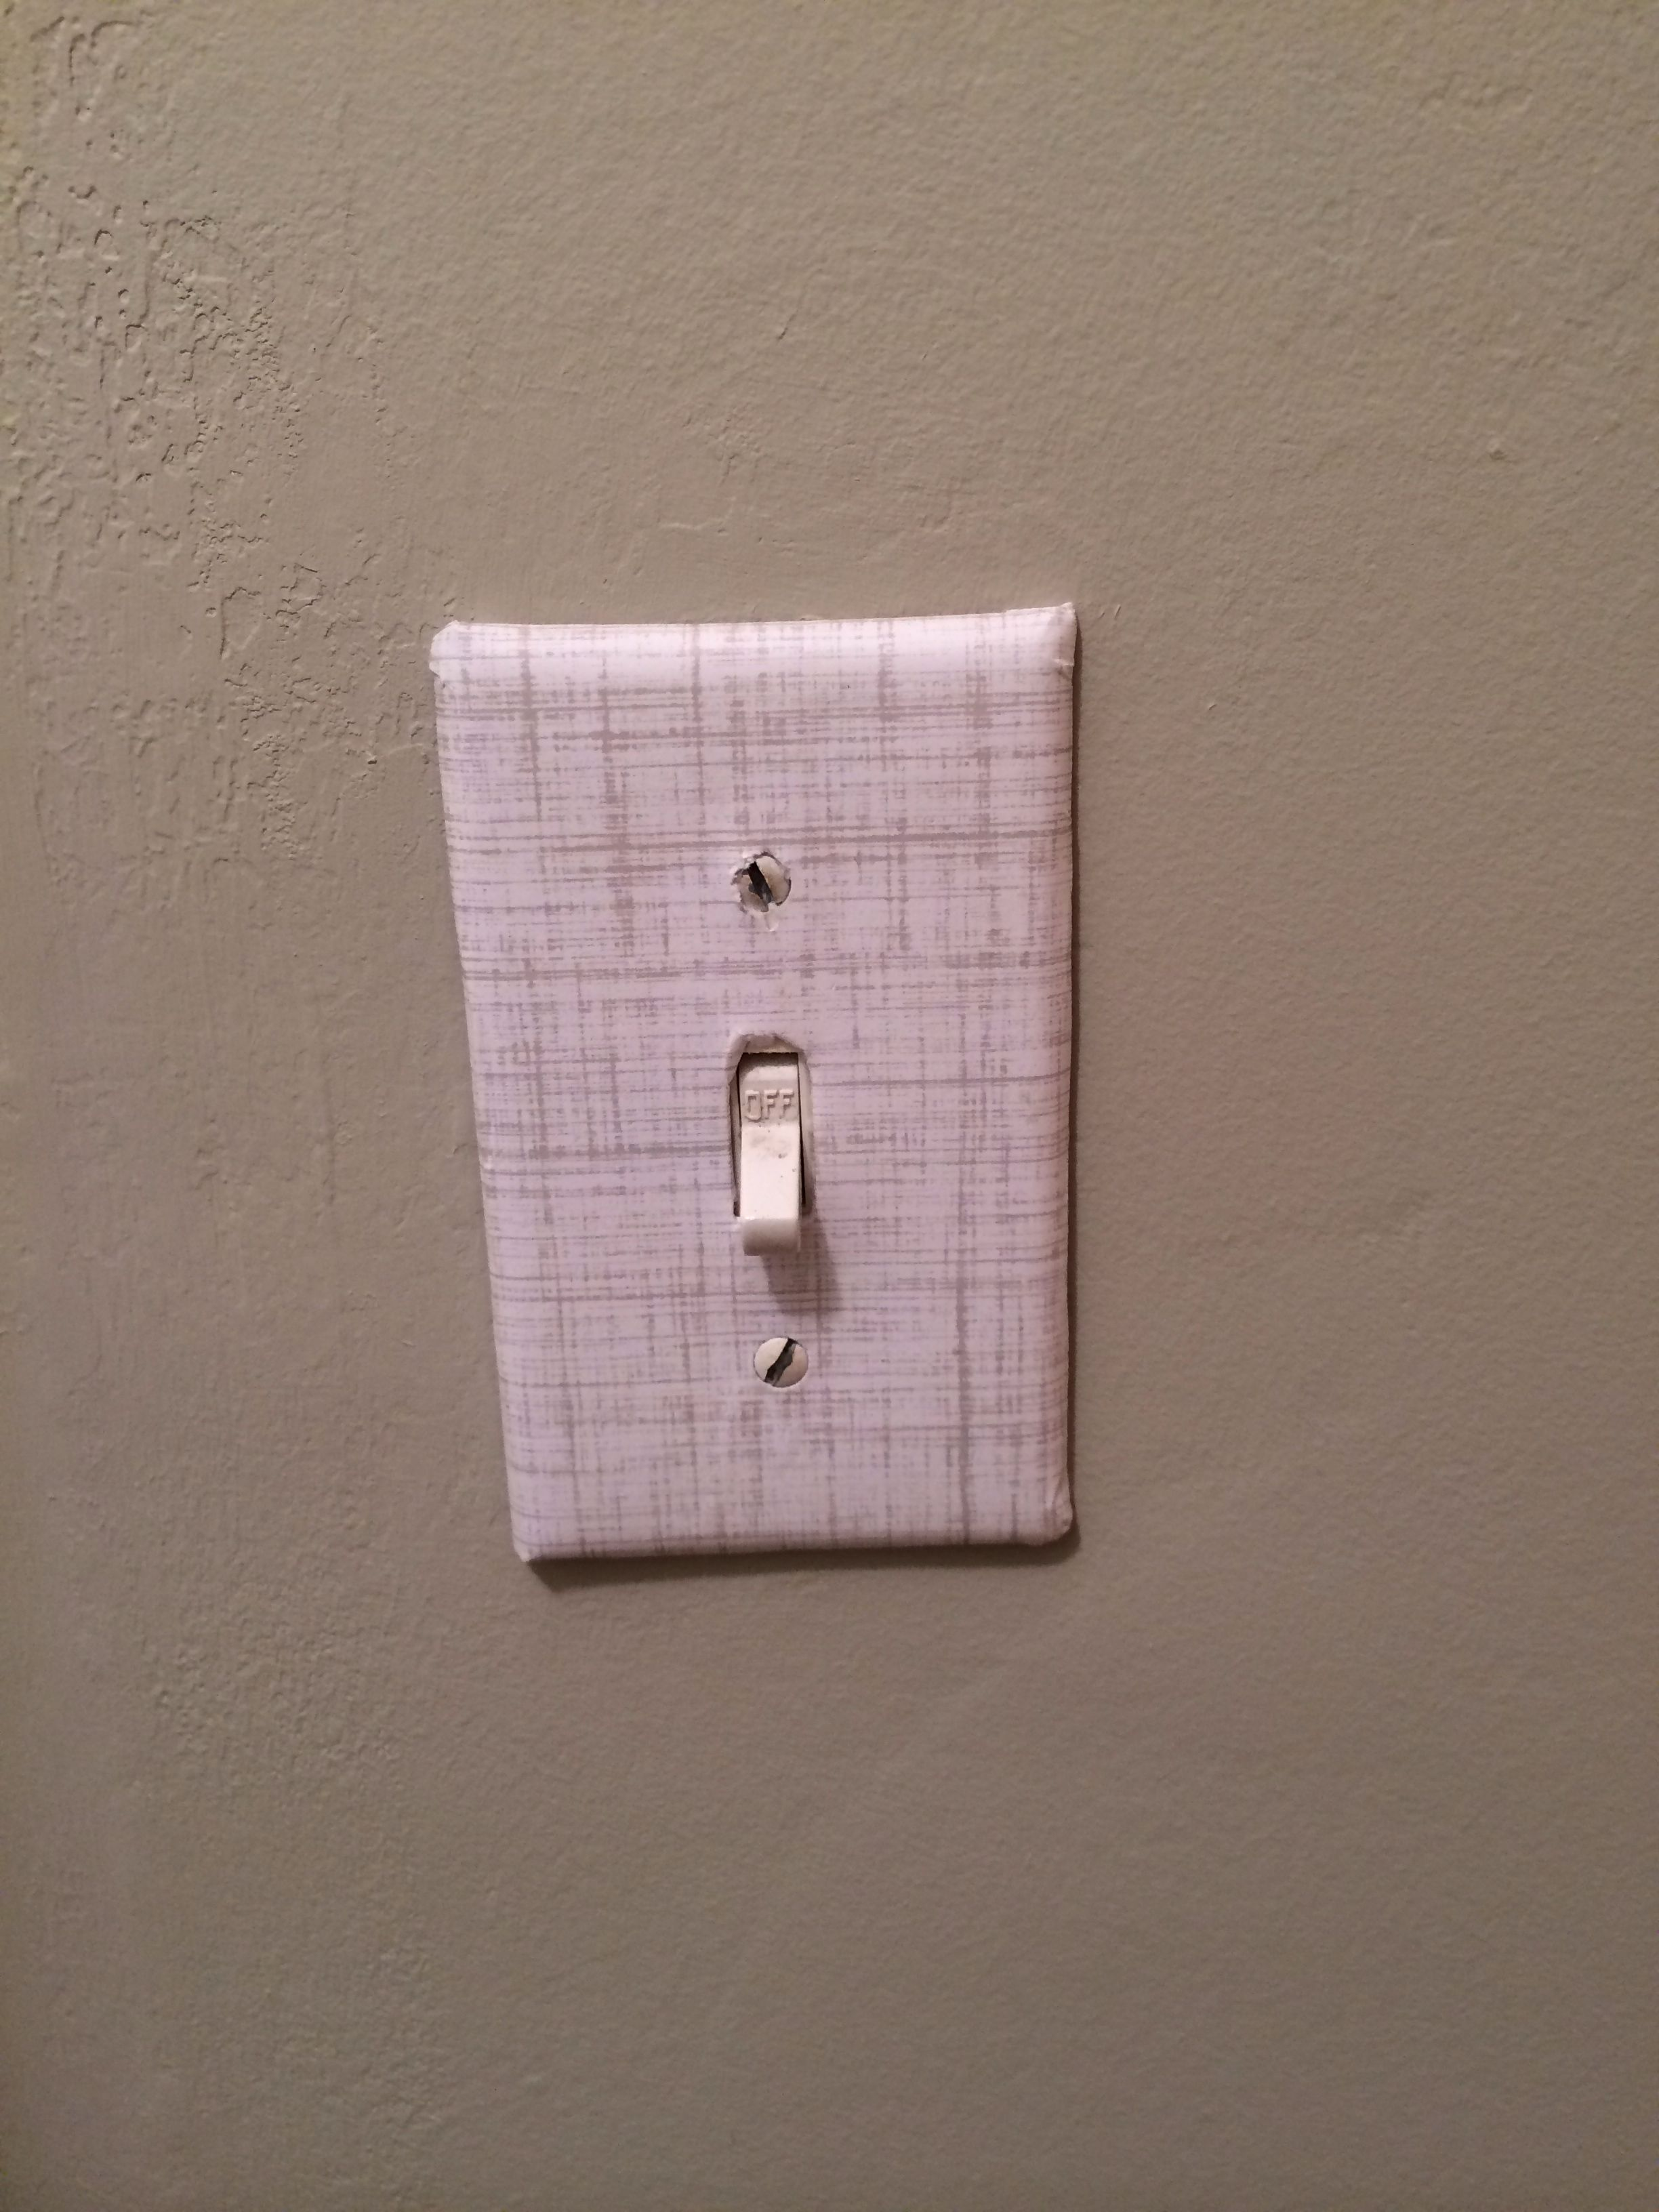 Covered The Lightswitch With Scrapbook Paper And Mod Podge Super